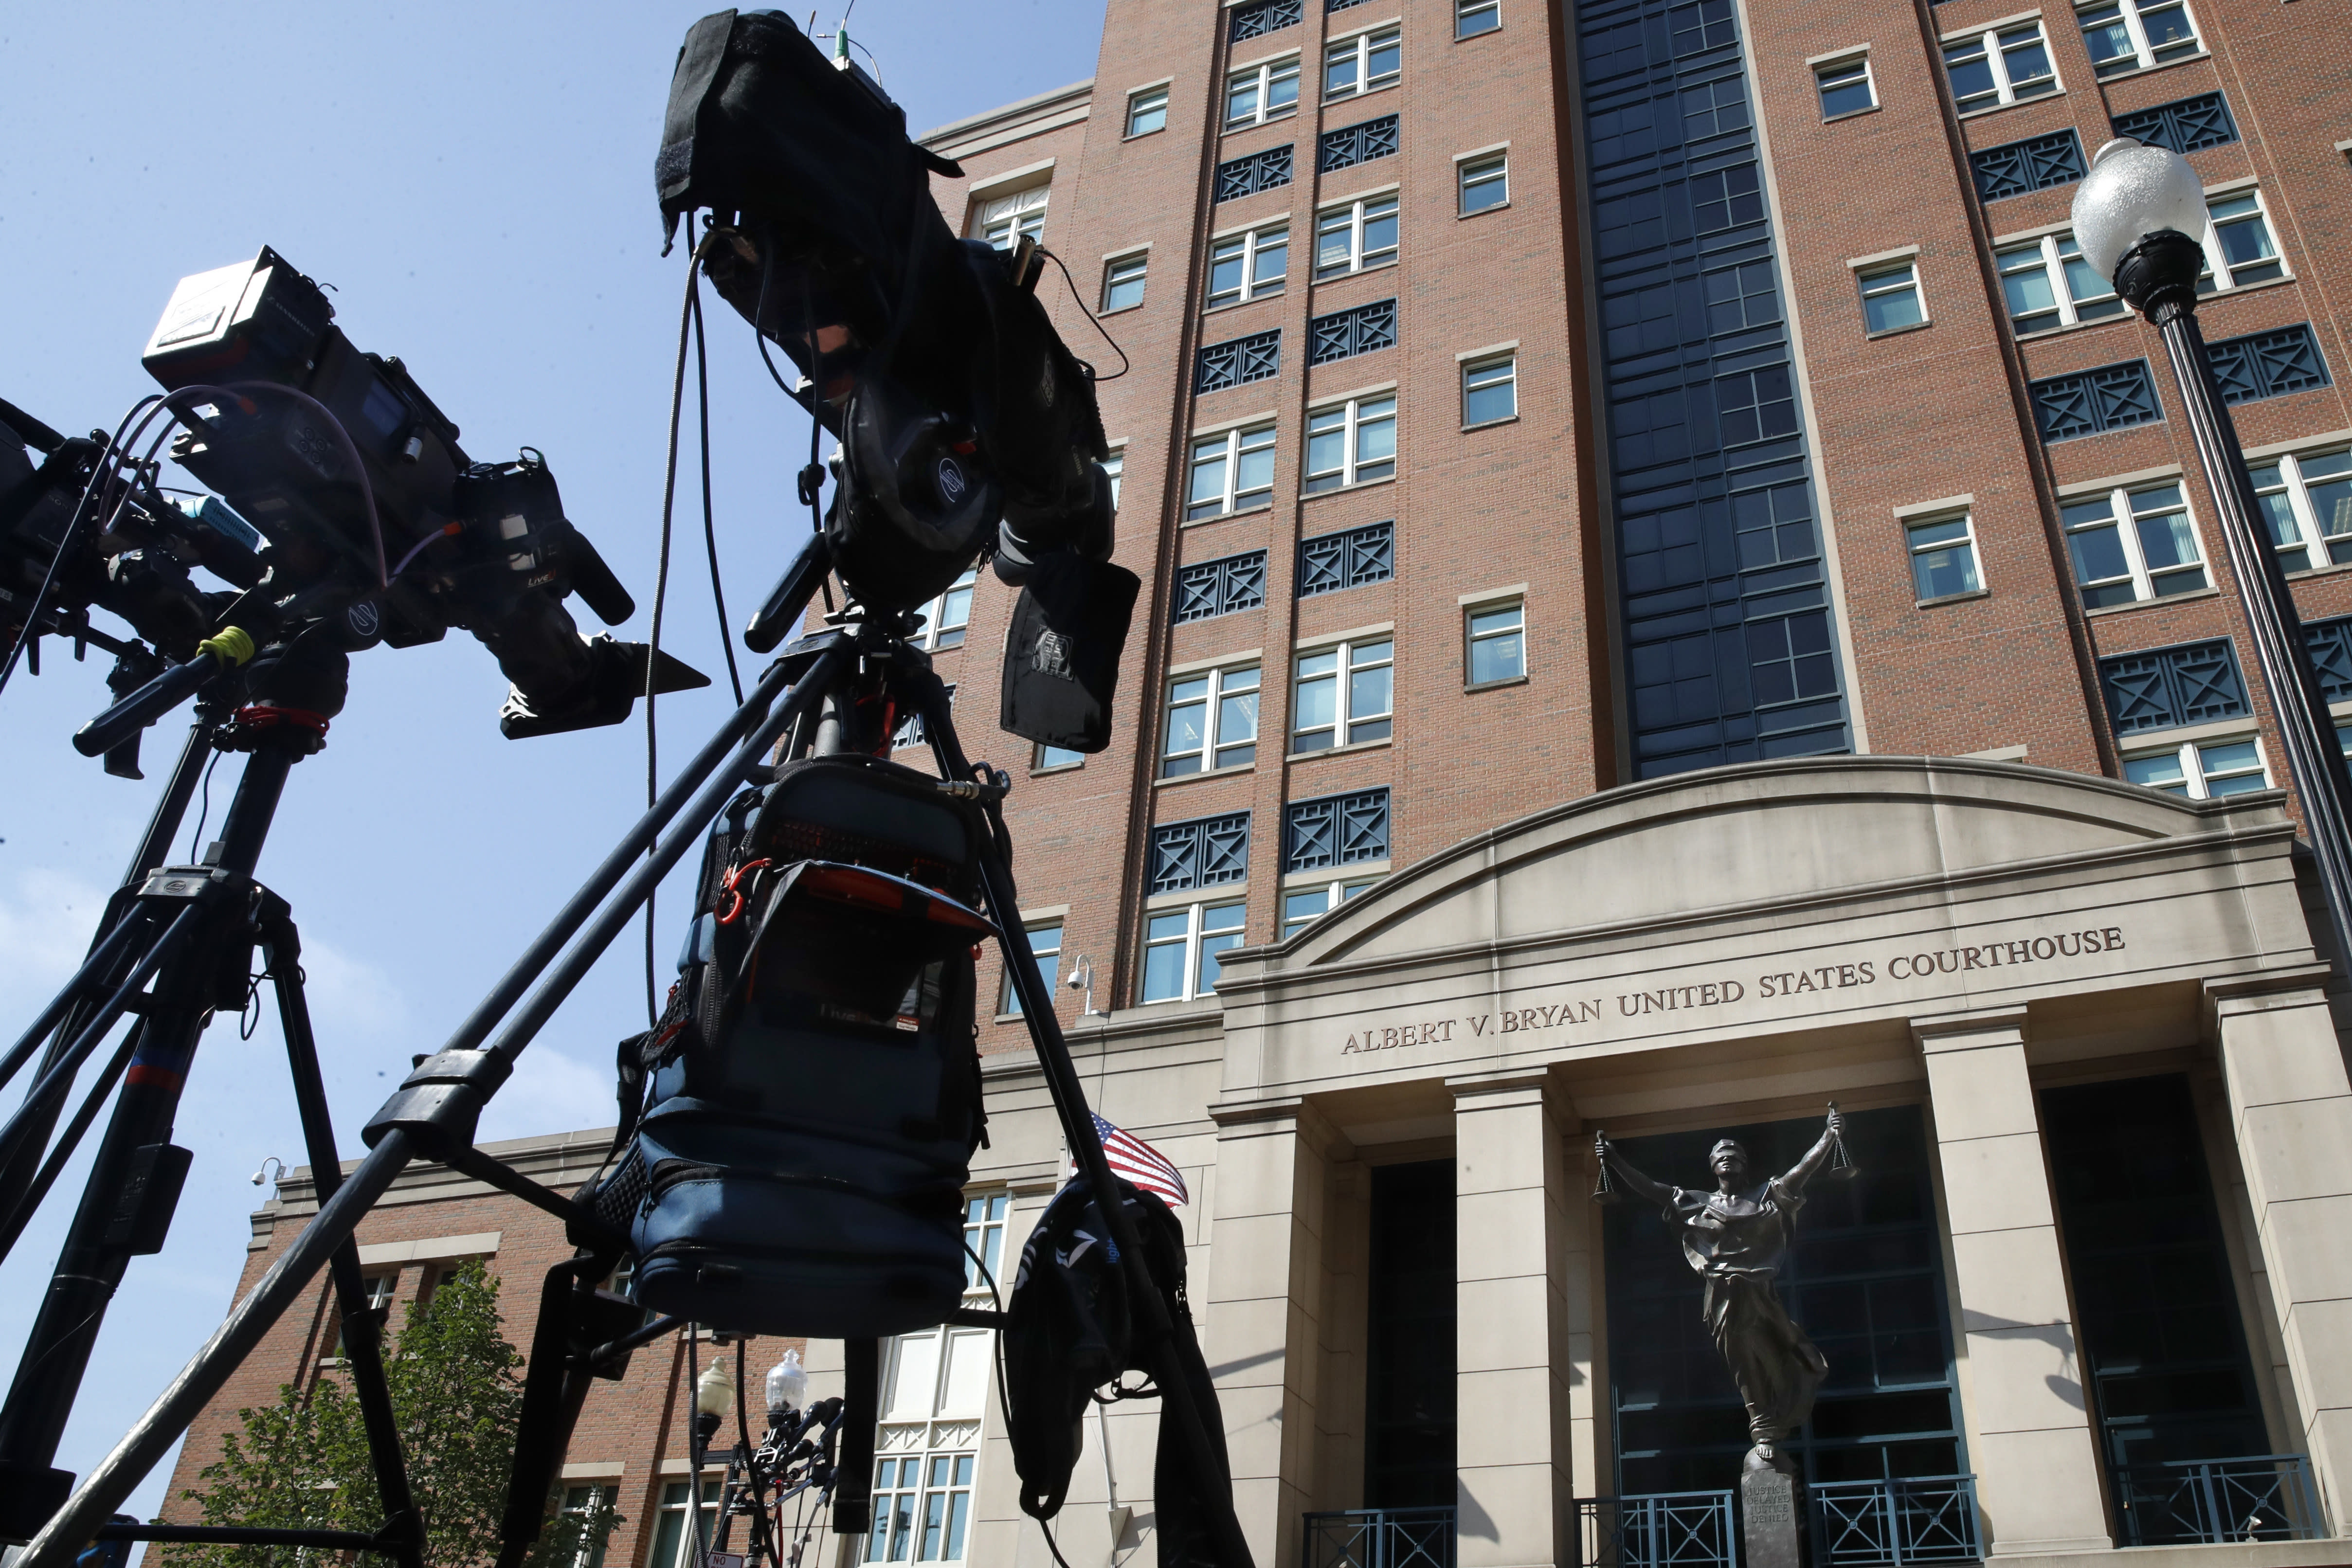 Television cameras are set up outside as the trial of former Trump campaign chairman Paul Manafort continues at federal court in Alexandria, Va., Tuesday, Aug. 7, 2018. (AP Photo/Jacquelyn Martin)